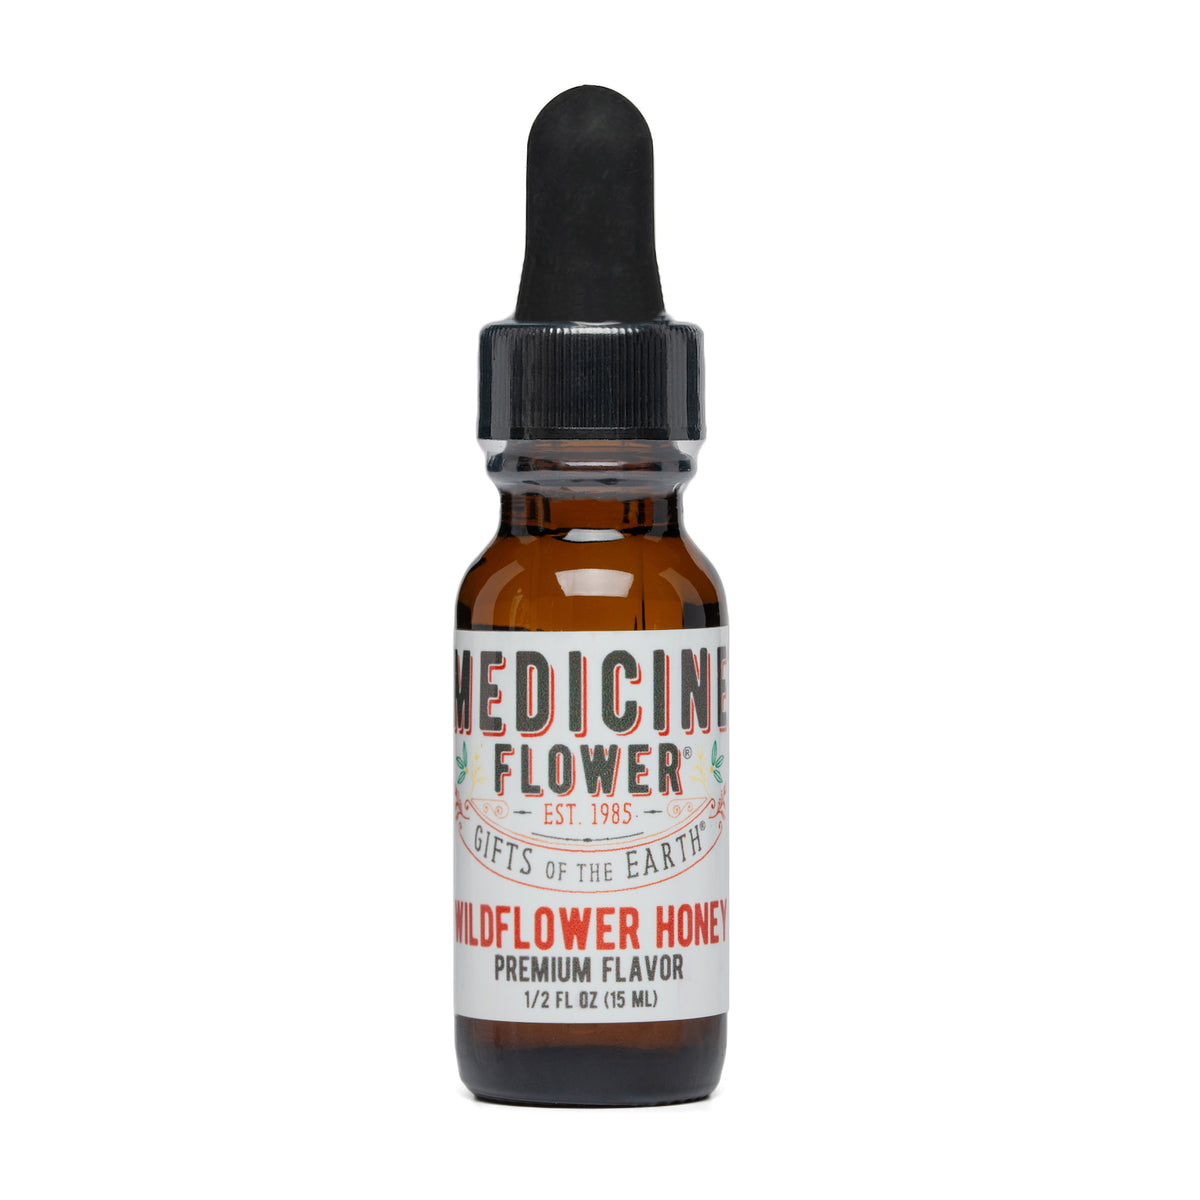 Wildflower Honey Flavoured Premium Extract (1/2 oz)